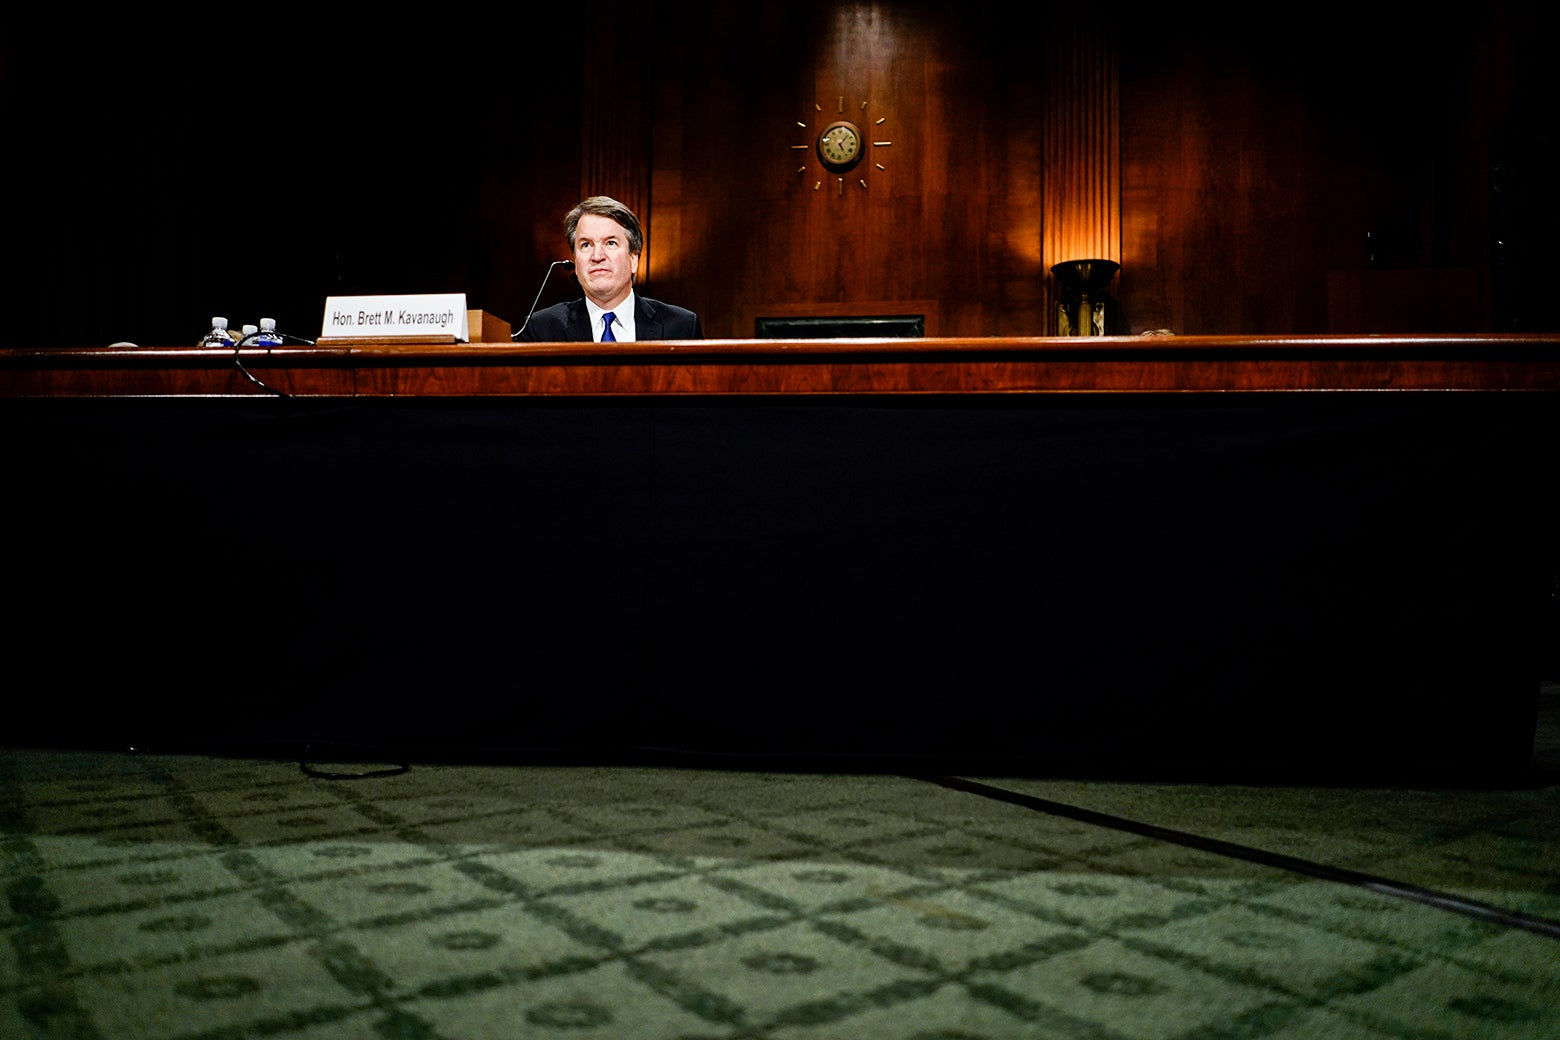 Kavanaugh seated for questioning.